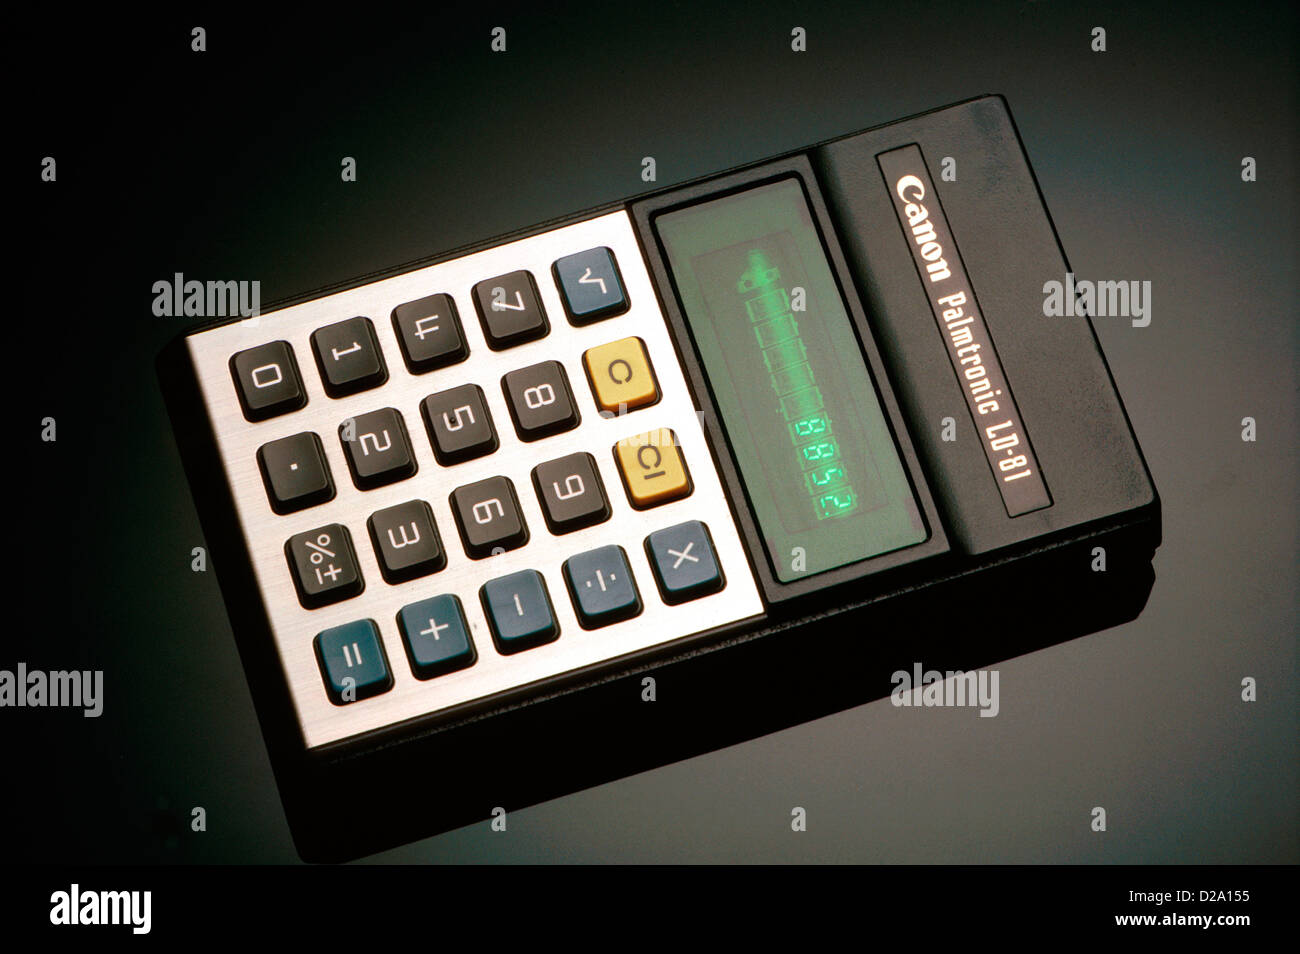 Electronic Calculator Circa. 1985 - Stock Image